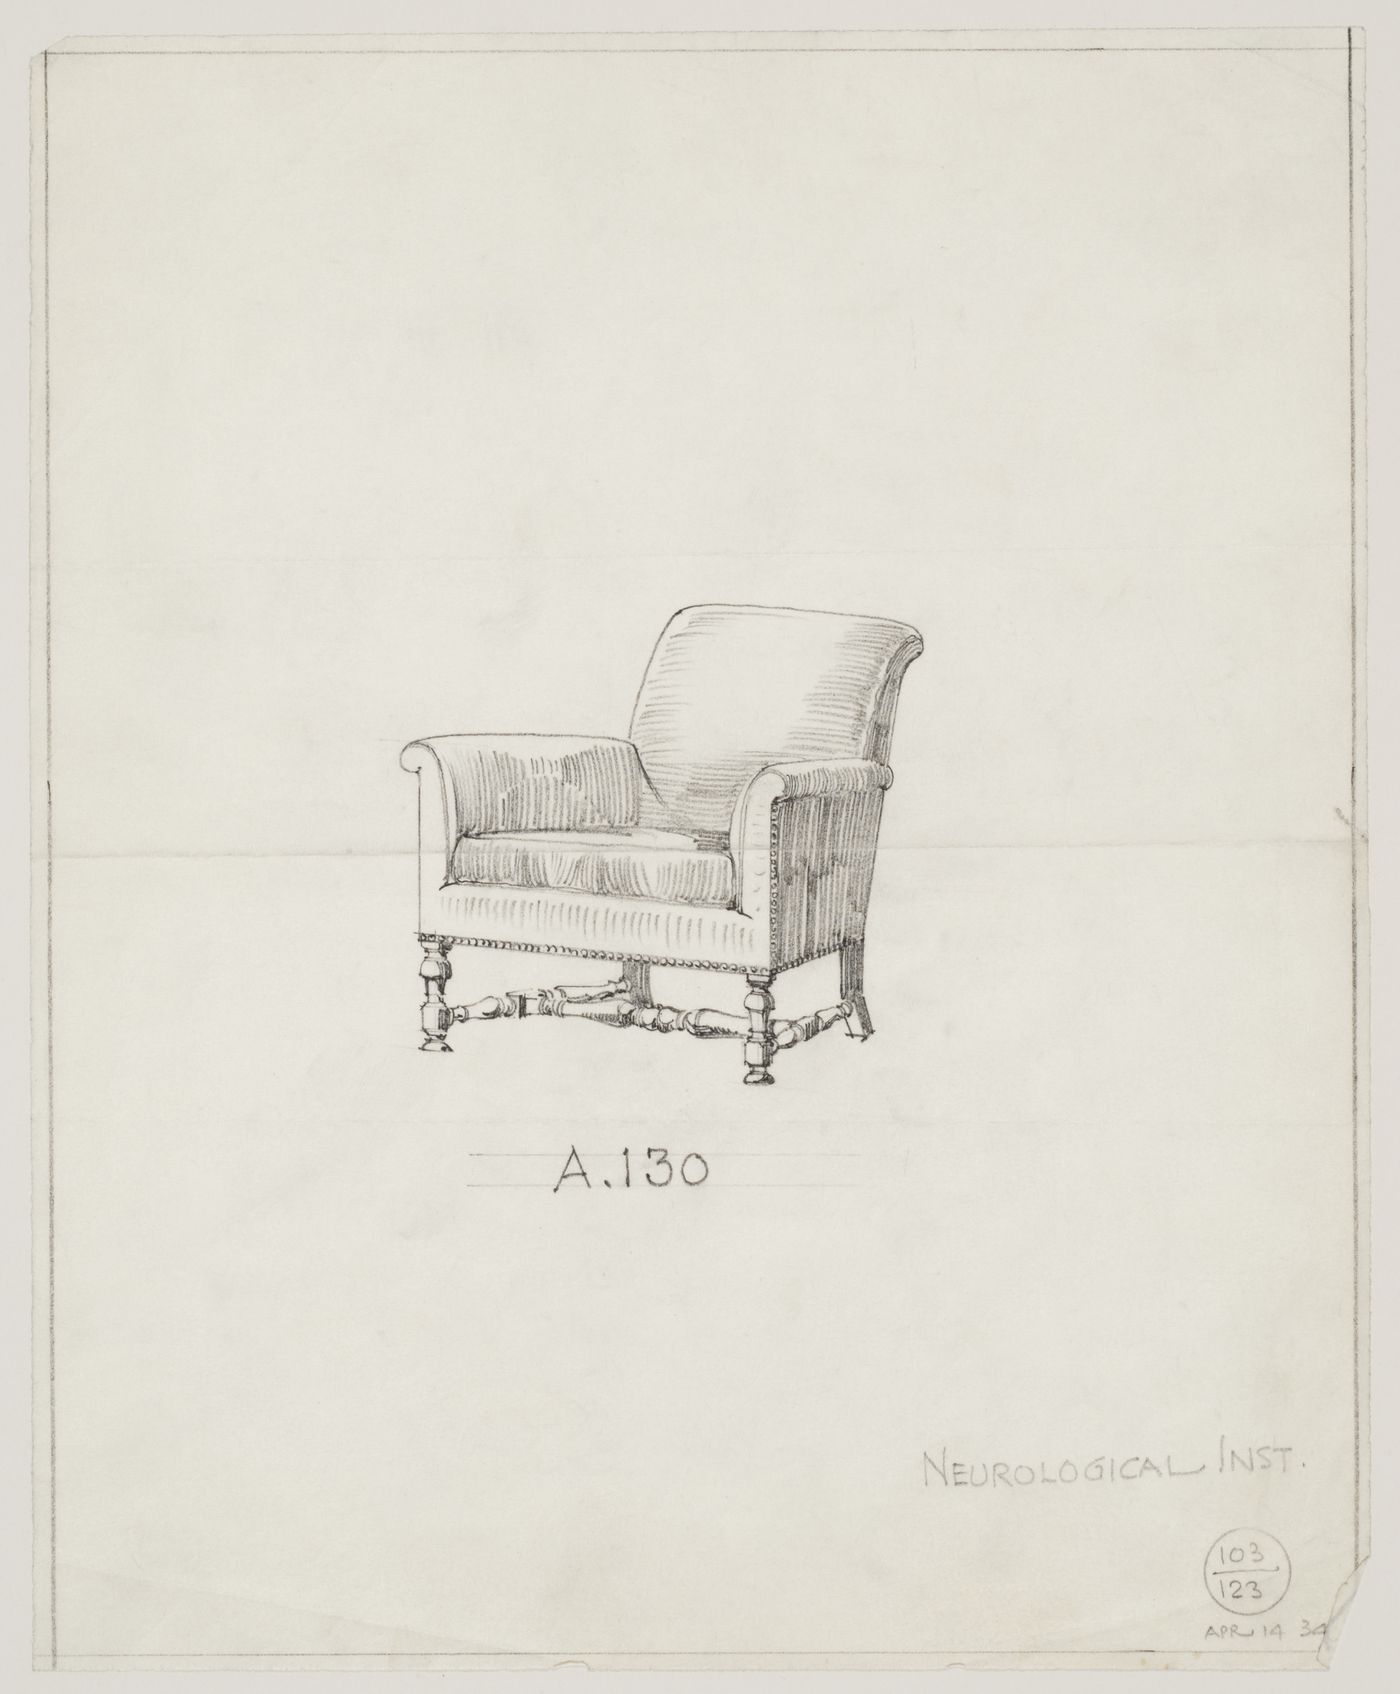 Montréal Neurological Institute, Montréal, Québec: drawing of a chair